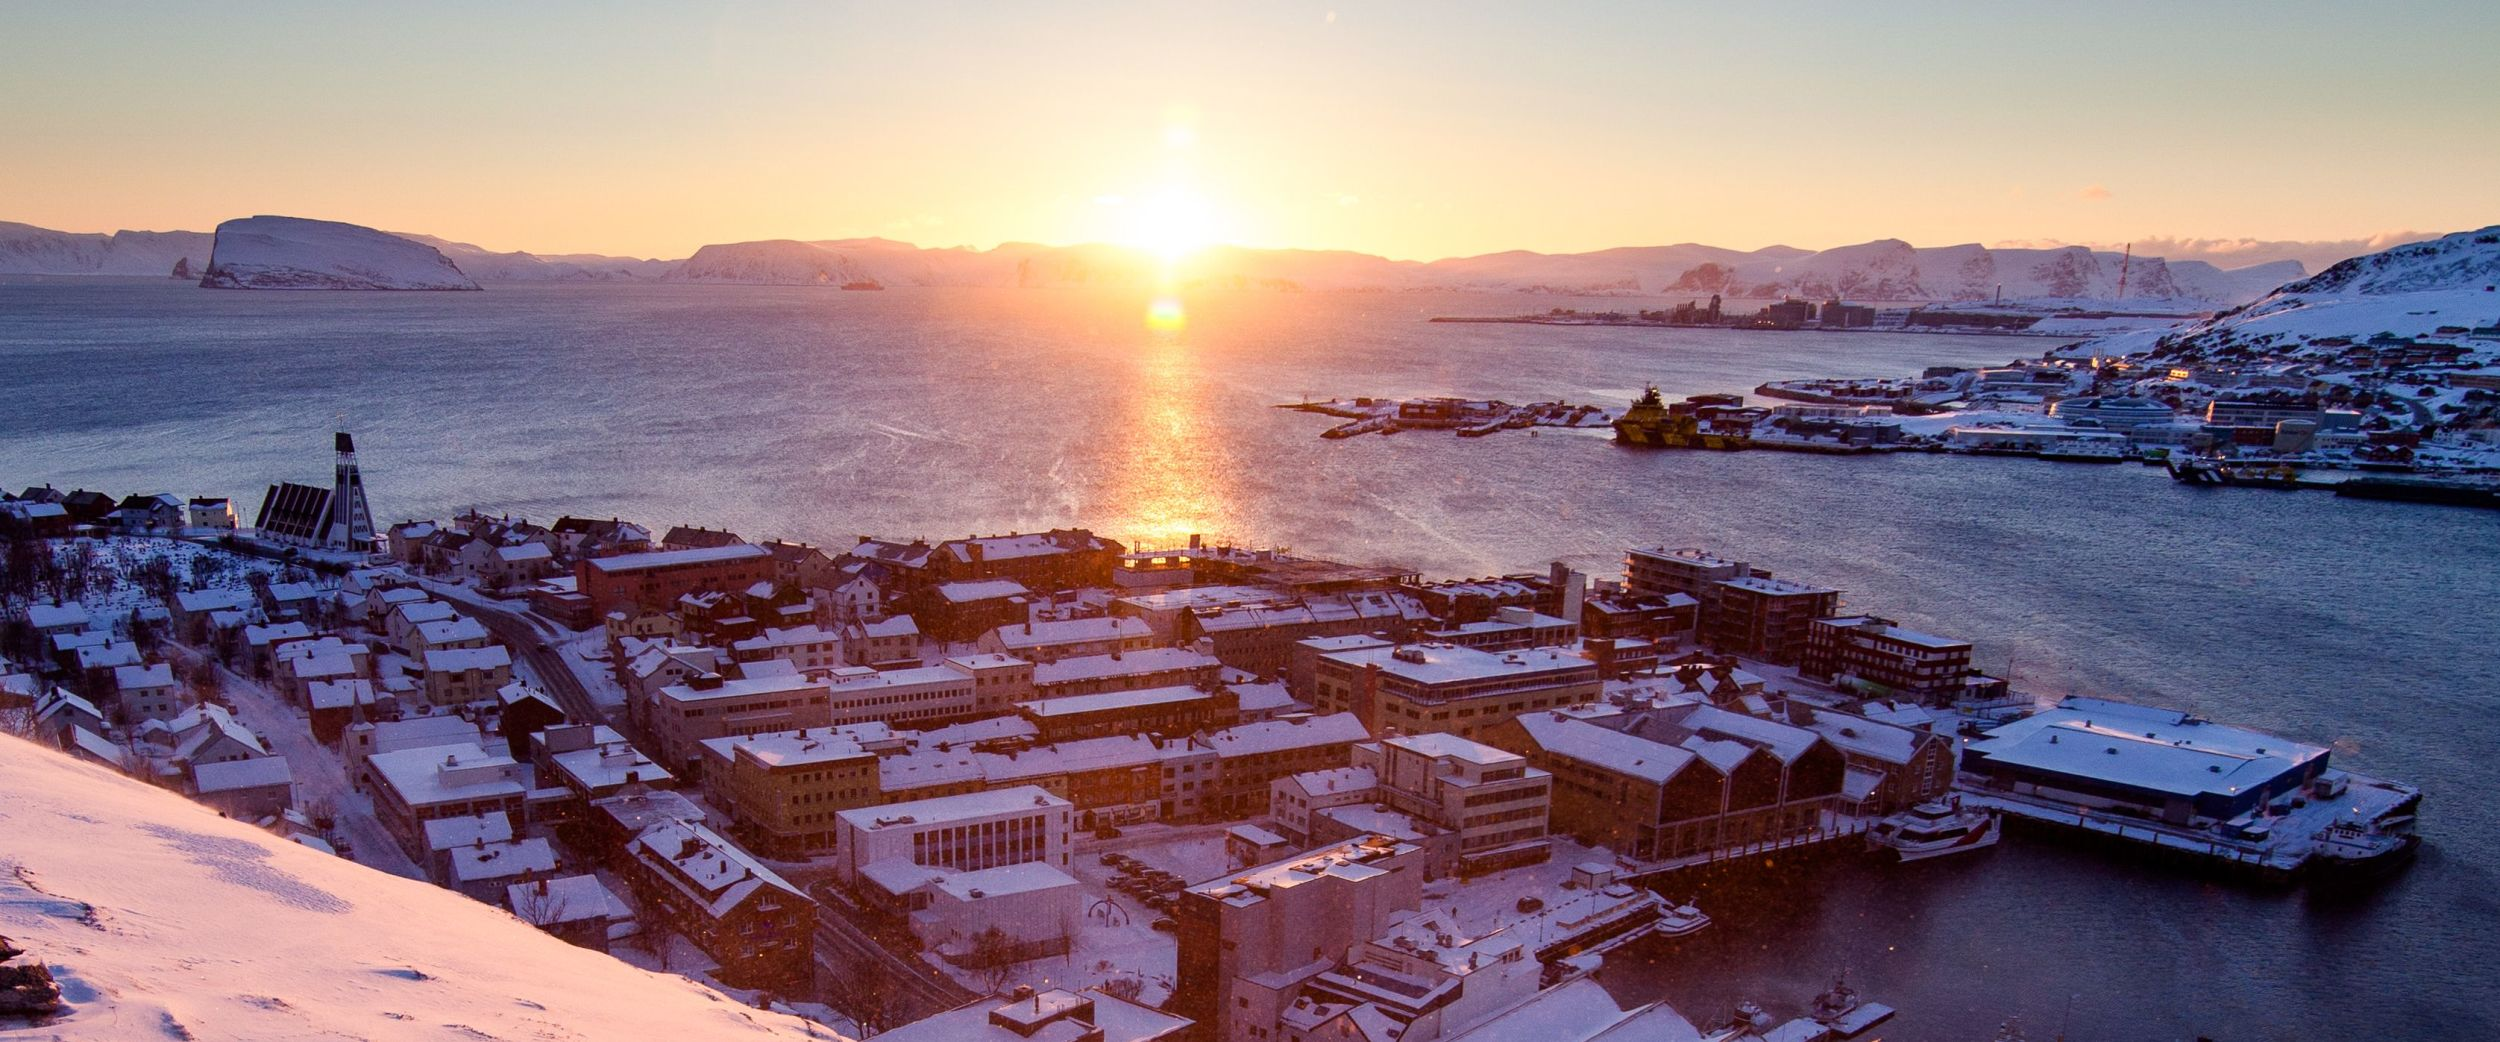 Viewpoint Salen. Sunset in Hammerfest on a beautiful winter day.